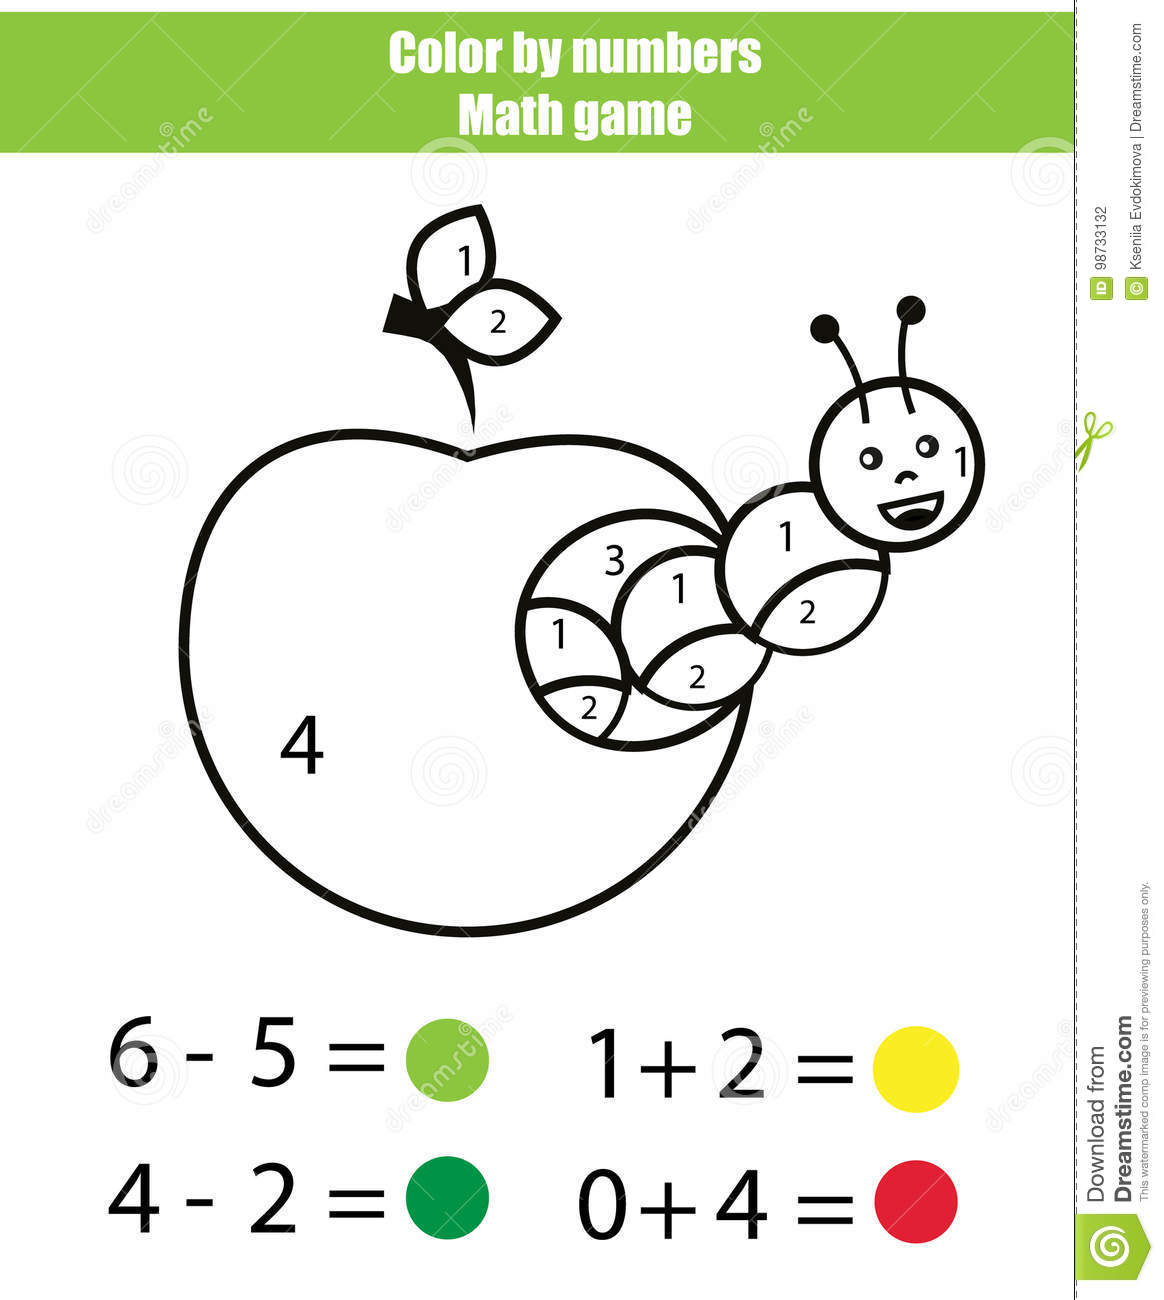 Color By Numbers Mathematics Game Coloring Page With